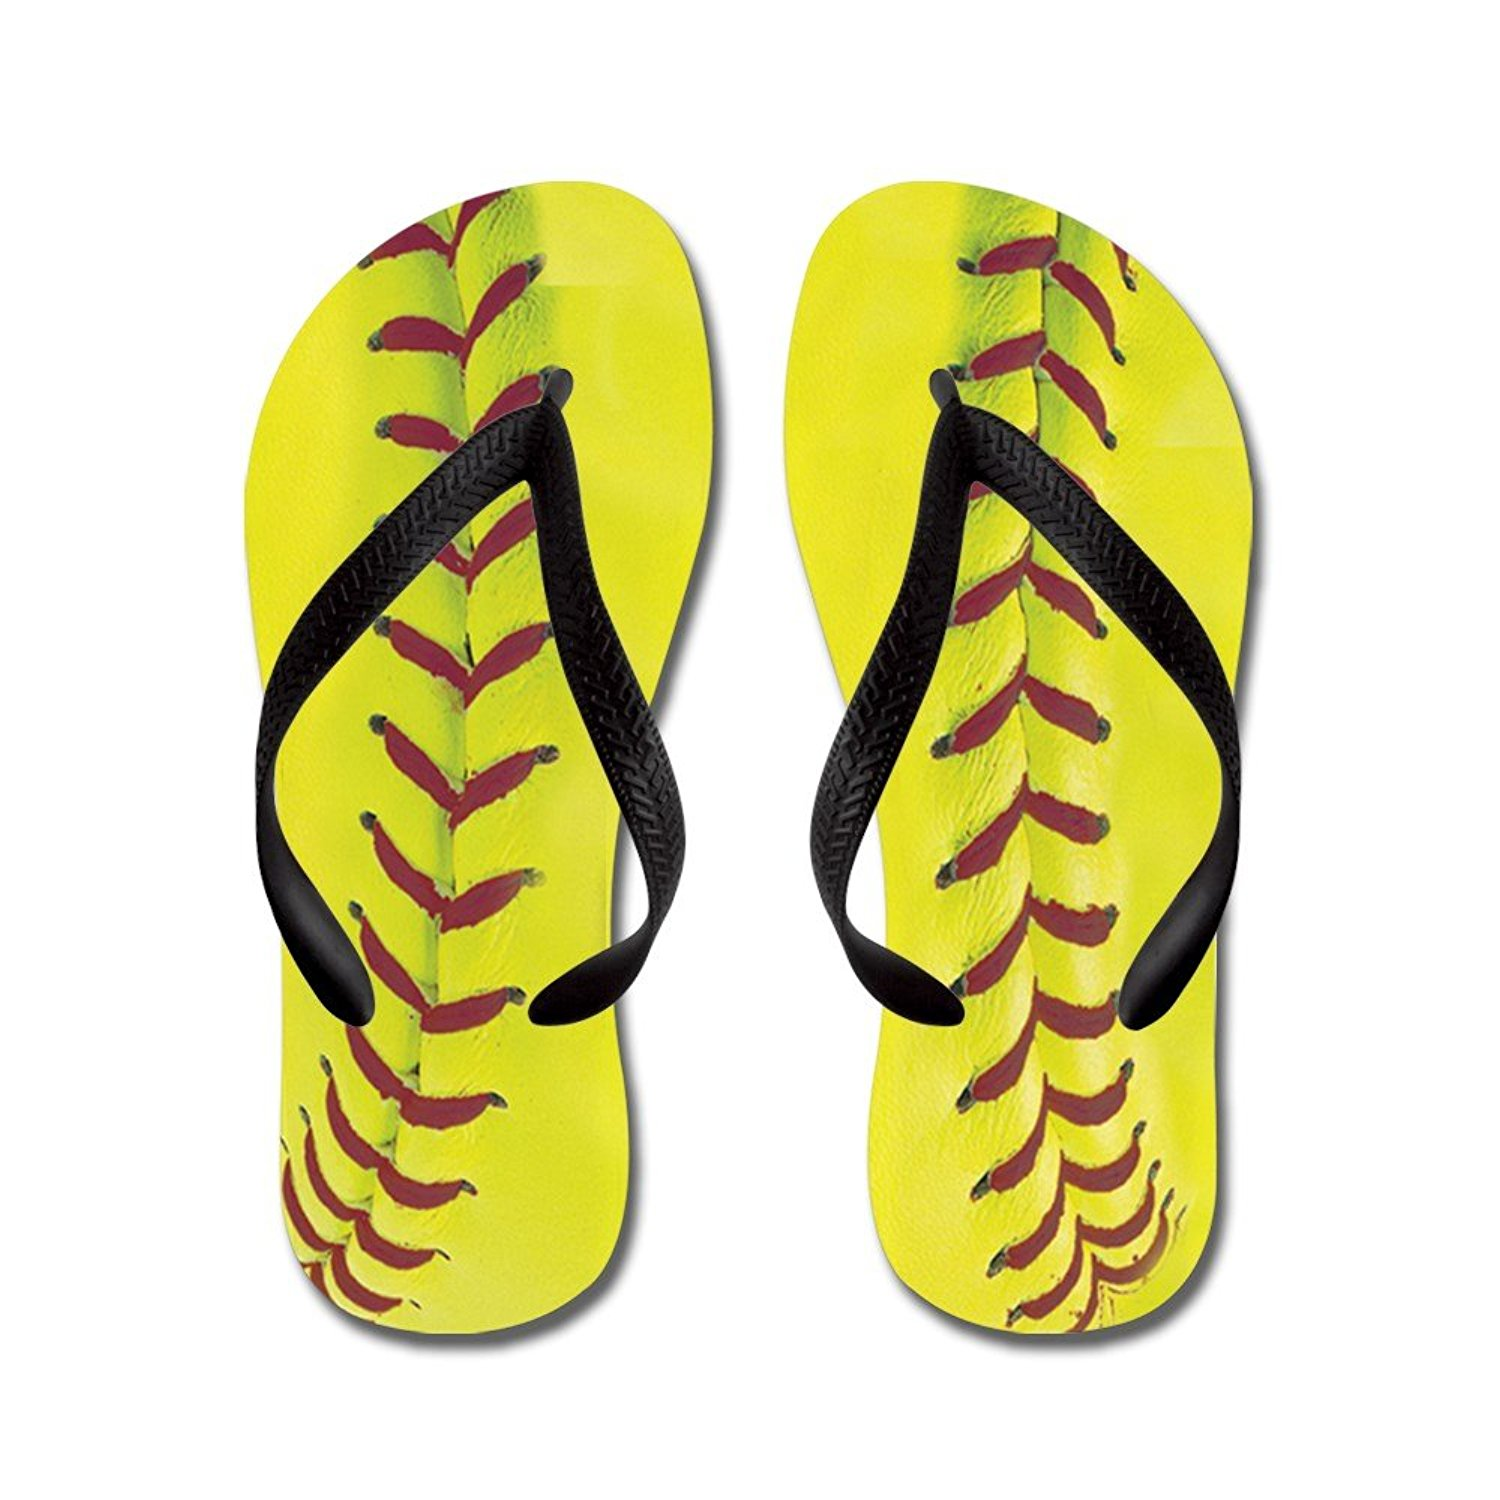 0883f330027b Get Quotations · CafePress High-Visibility Yellow Softball - Flip Flops